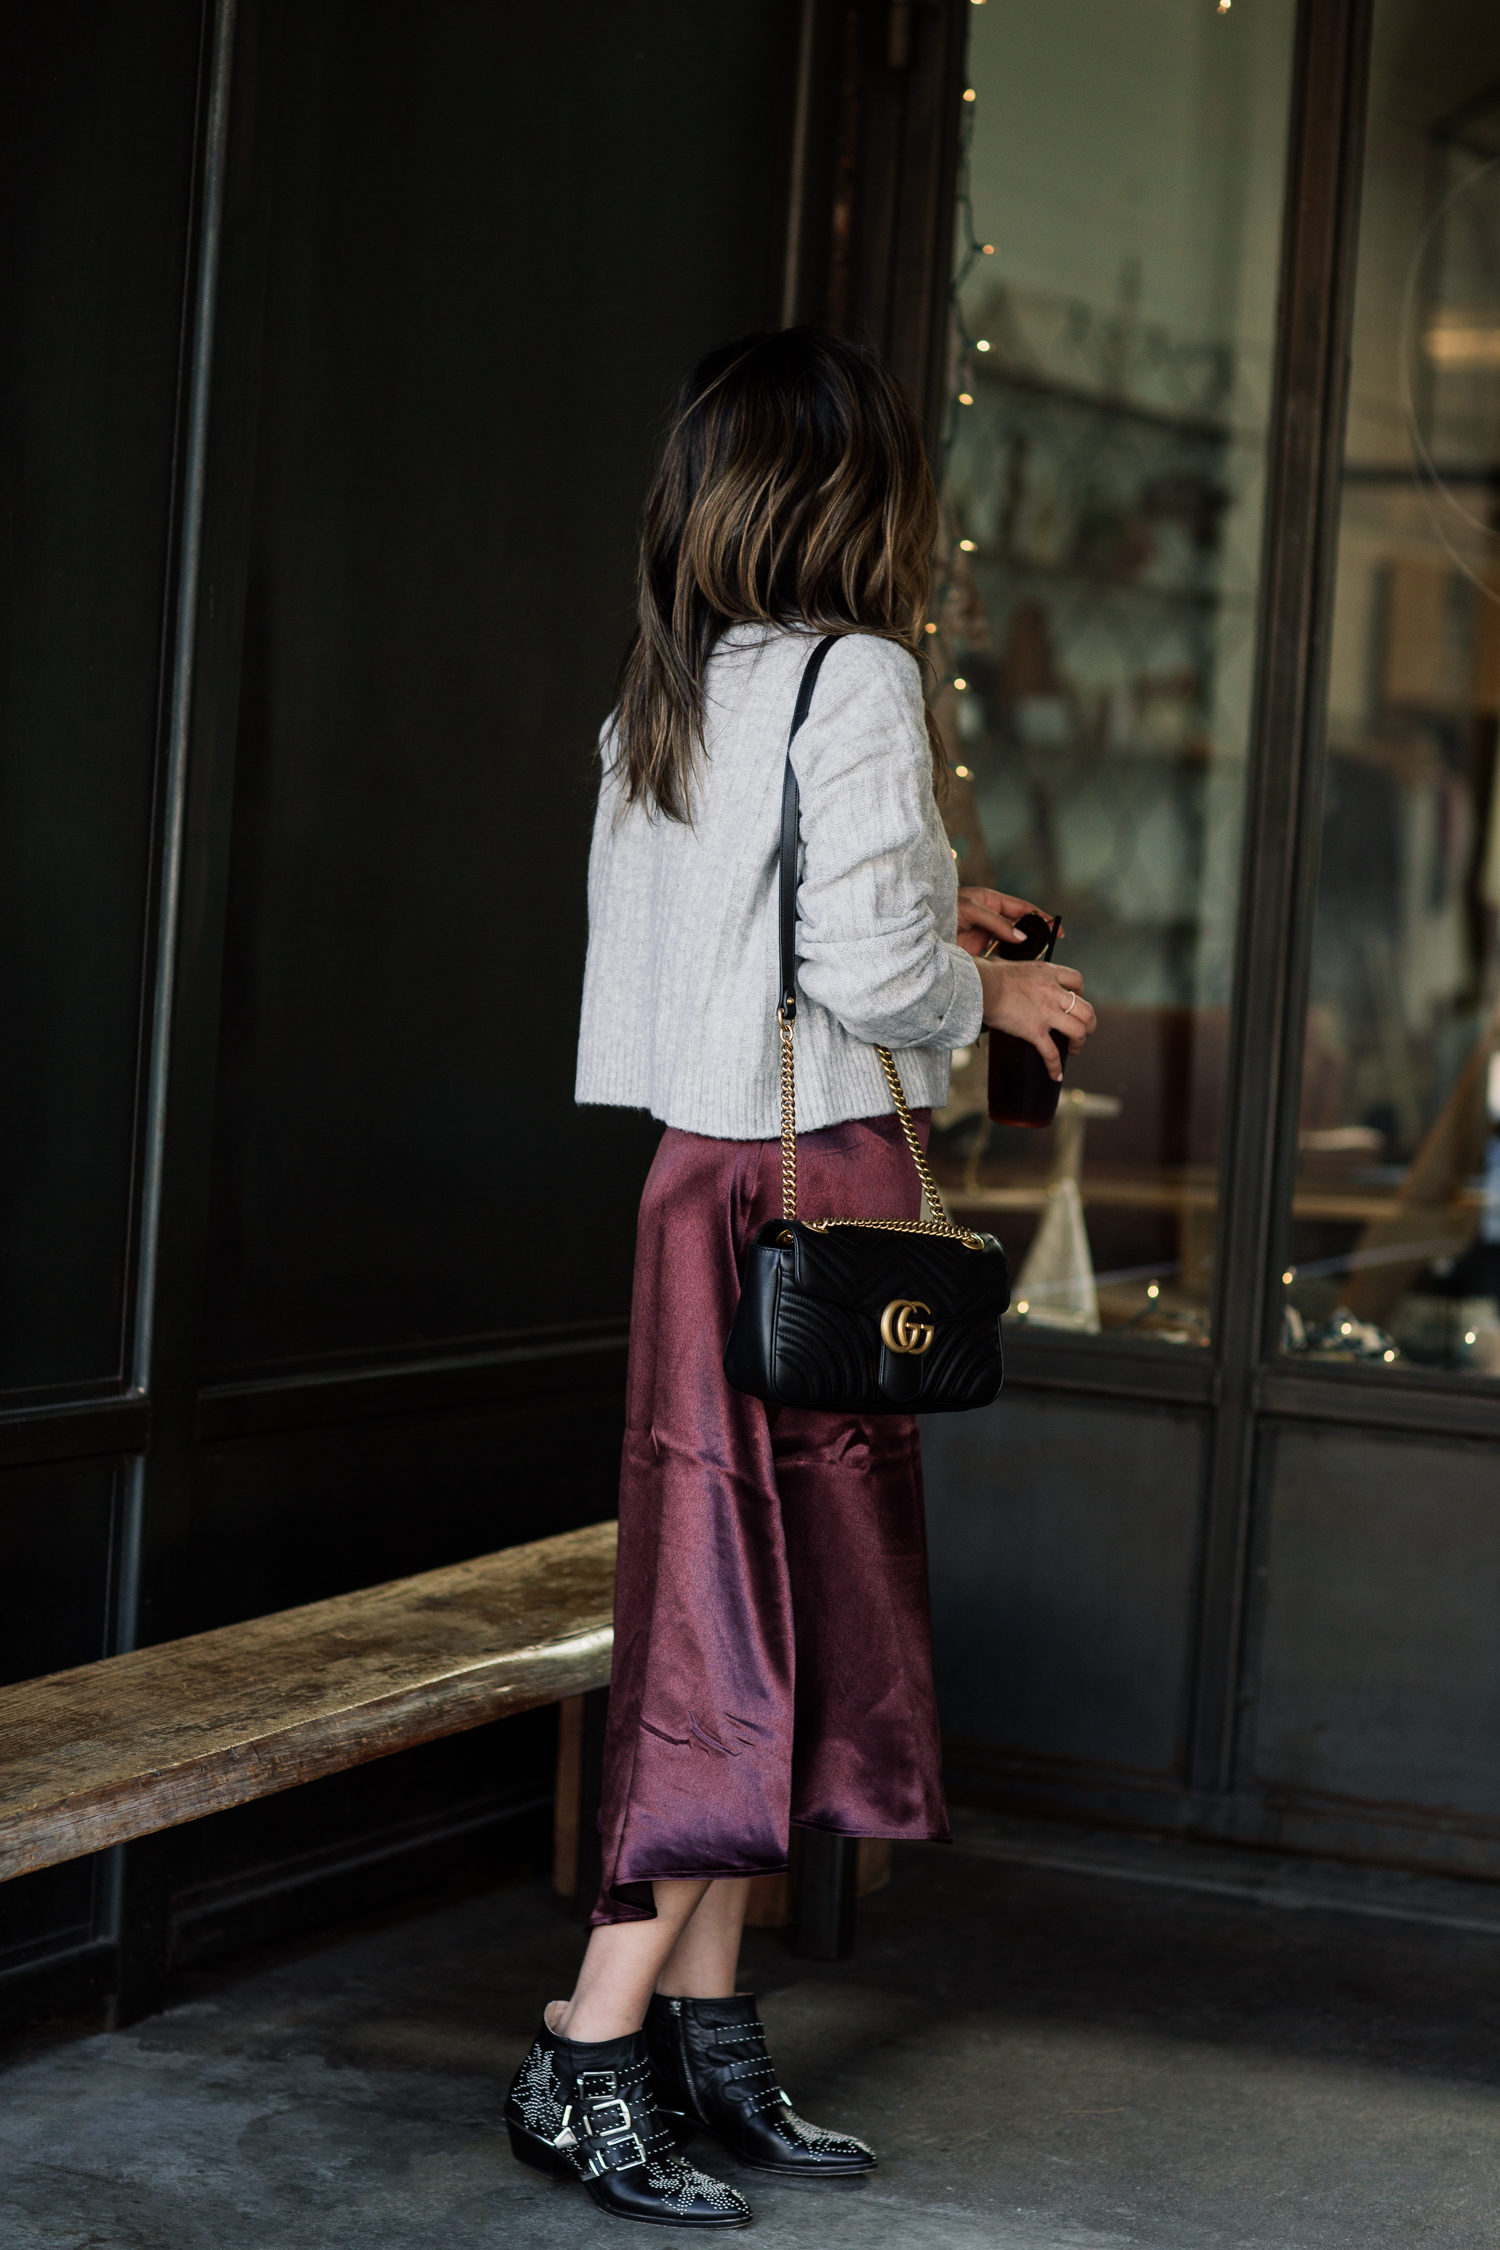 Blogger Sara Azani of Style MBA, a petite Brunette woman with blonde highlights wears a satin plum skirt and ribbed sweater from H&M, Chloé Susan Studded Buckle Boots, Ray-Ban Caravan Aviator Sunglasses, and a black leather Gucci shoulder bag outside of a charming café.